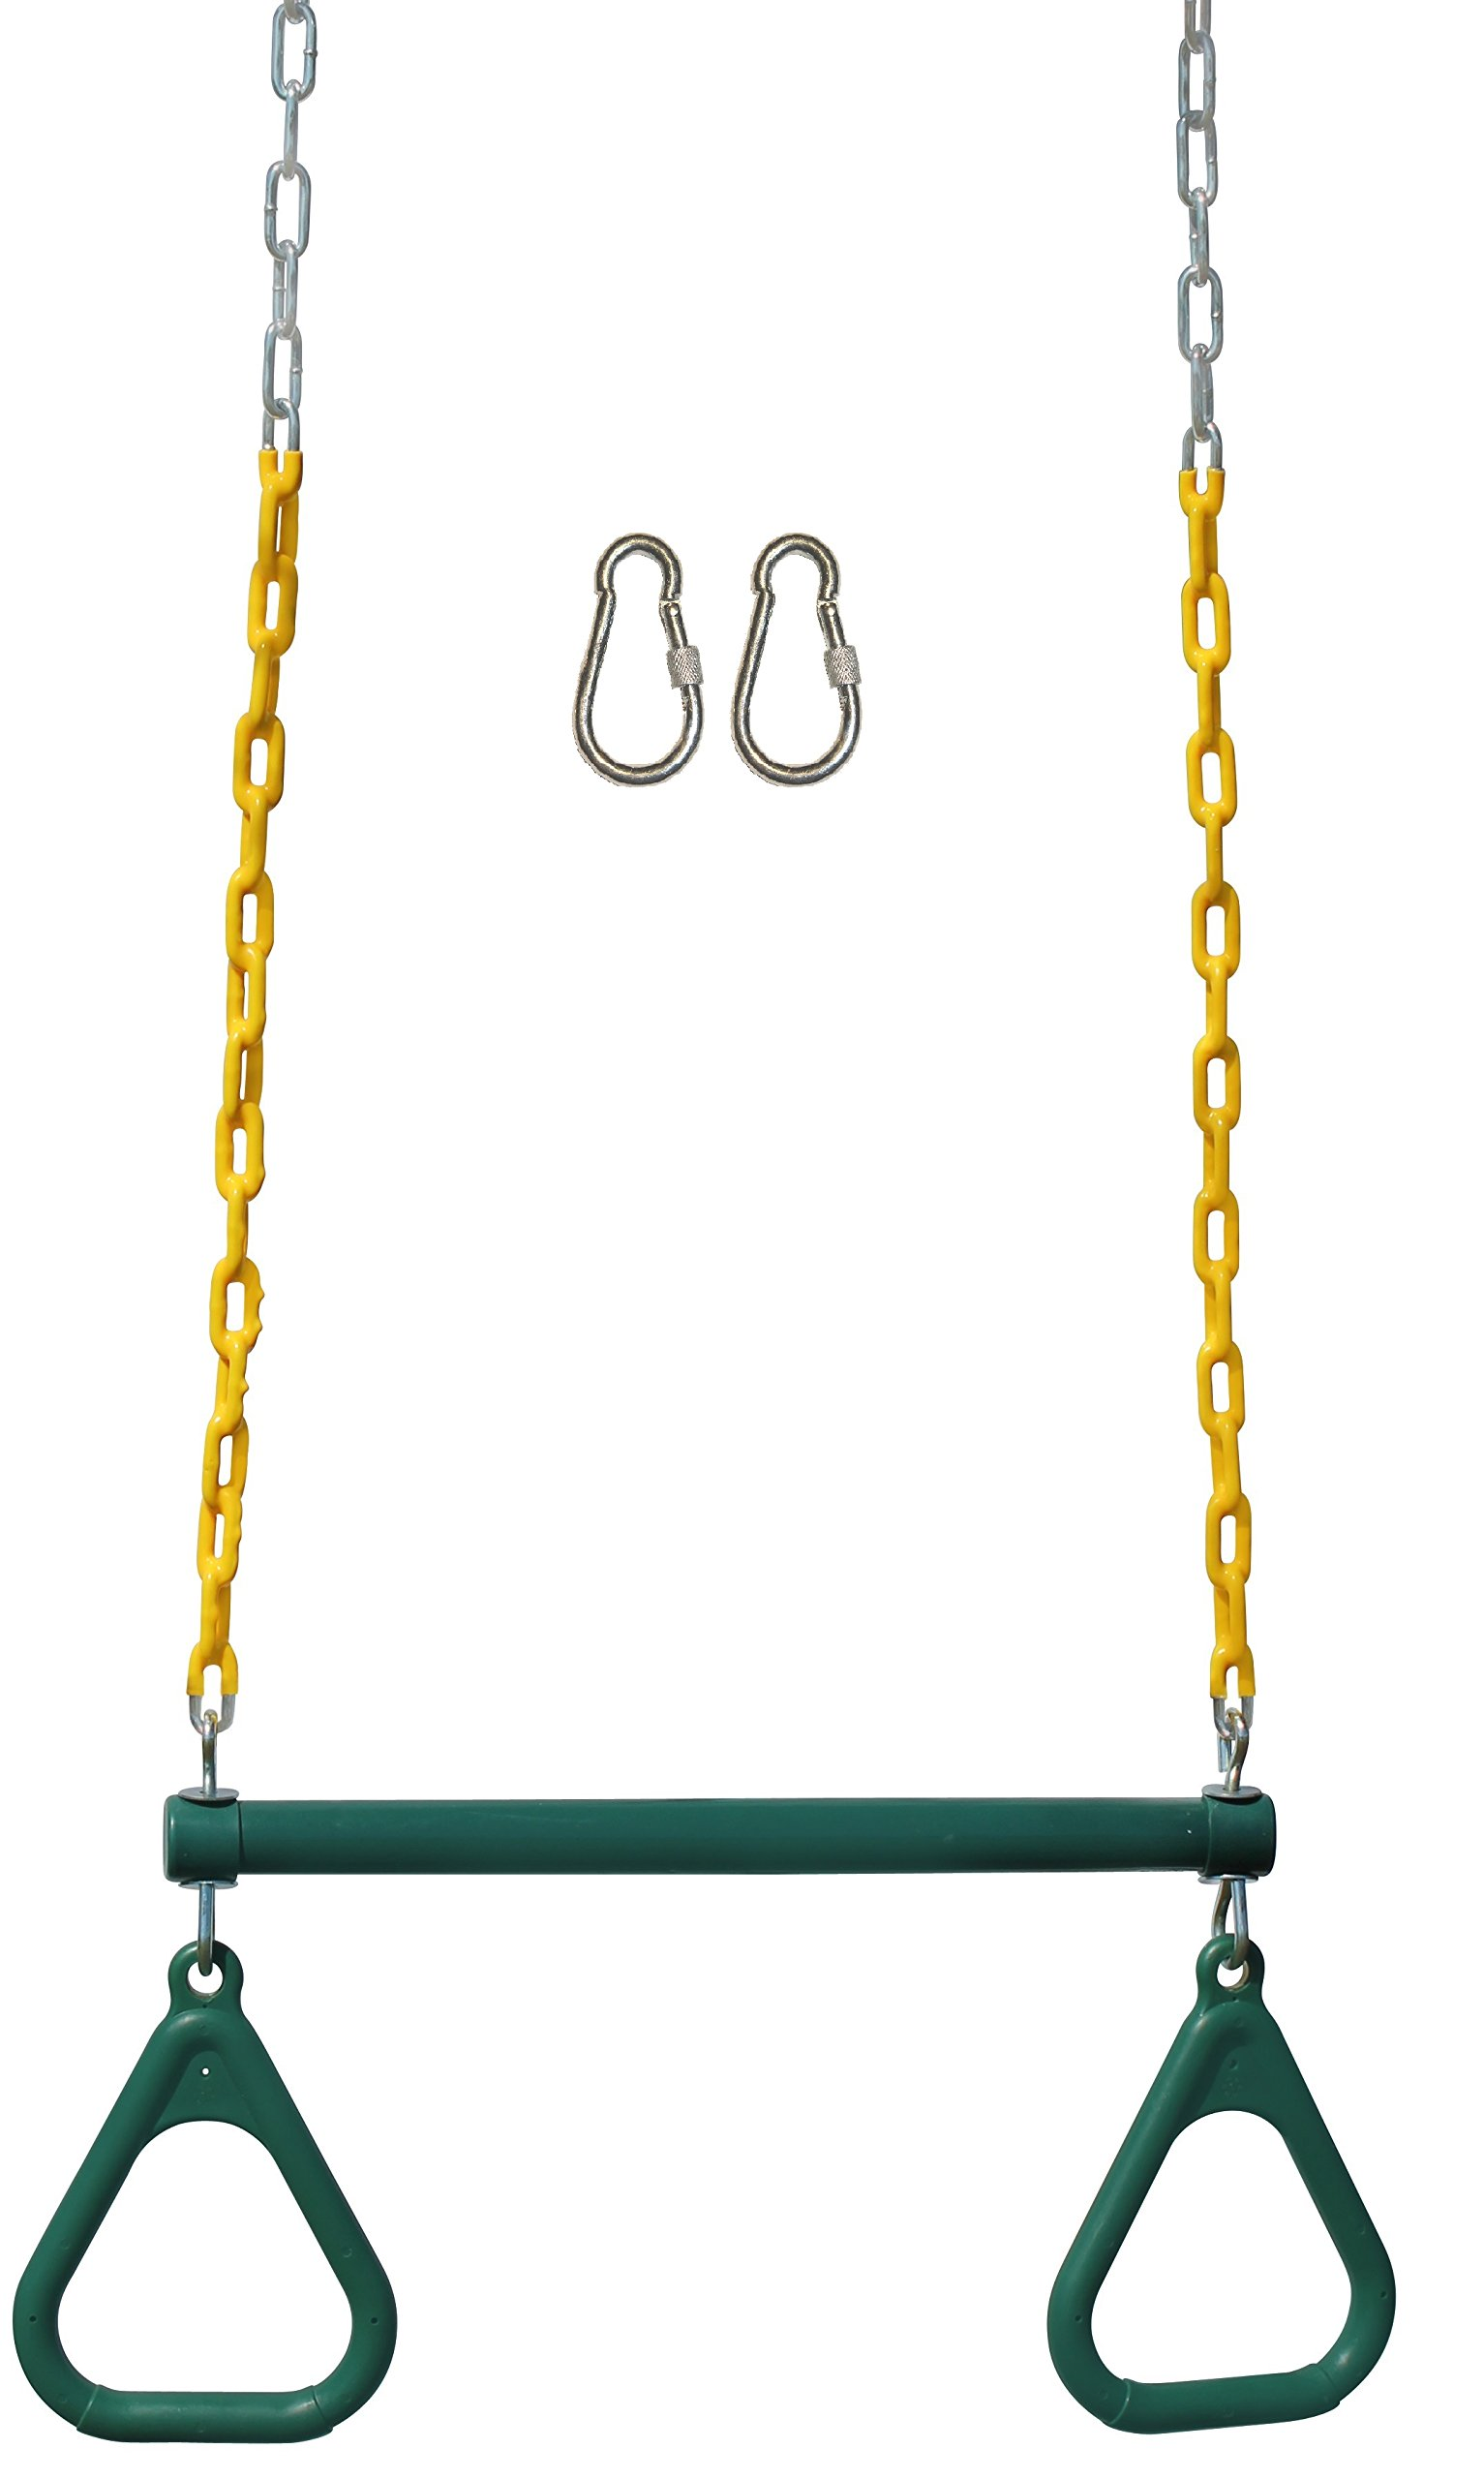 Jungle Gym Kingdom 18'' Trapeze Swing Bar Rings 48'' Heavy Duty Chain Swing Set Accessories & Locking Carabiners (Green) by Jungle Gym Kingdom